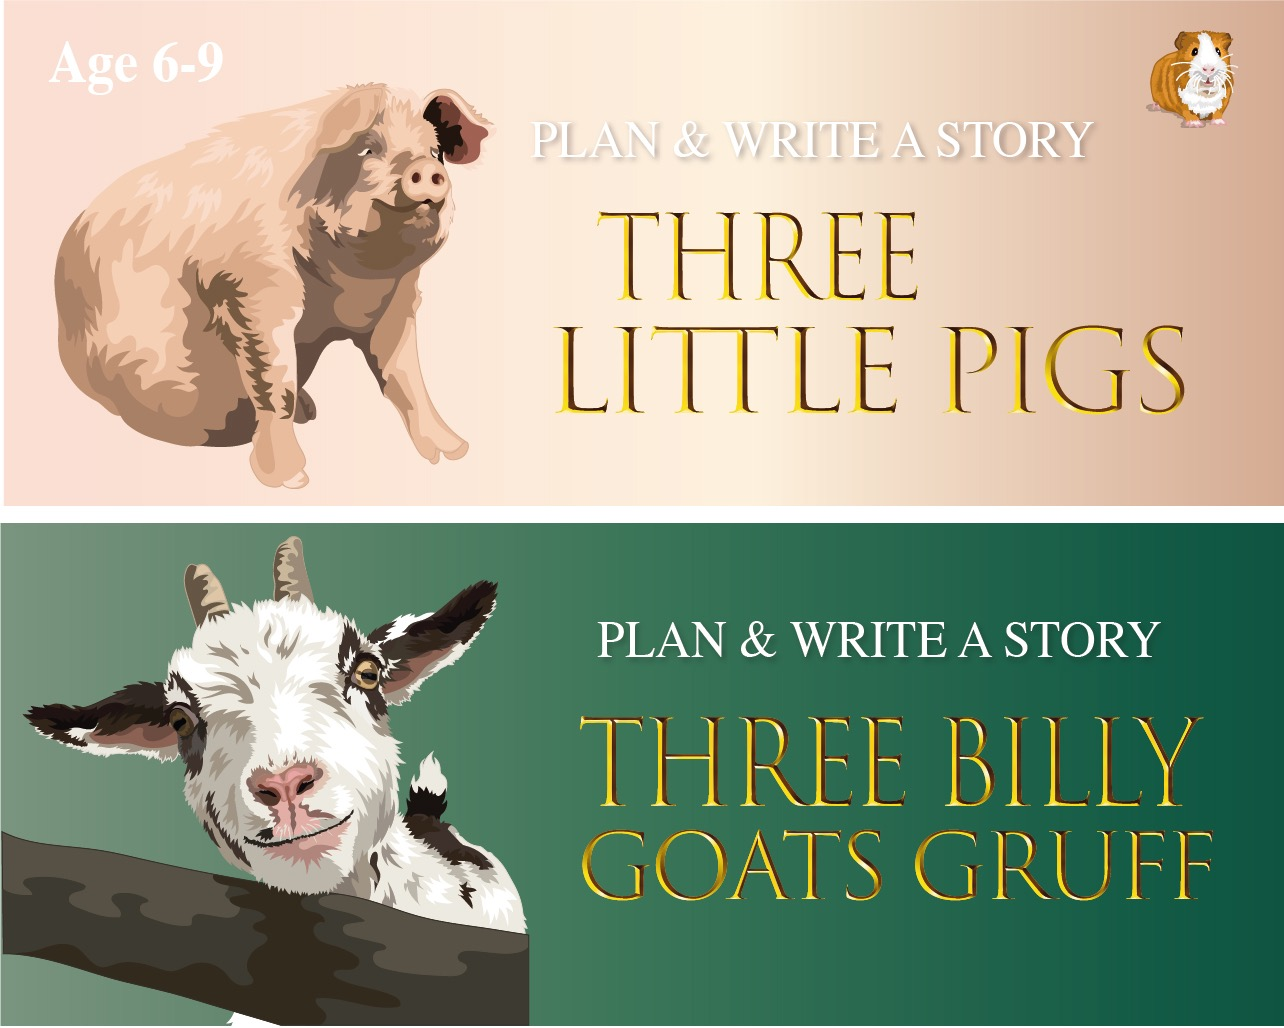 Plan And Write Fairy Tales: Pack 1 (6-9 years)